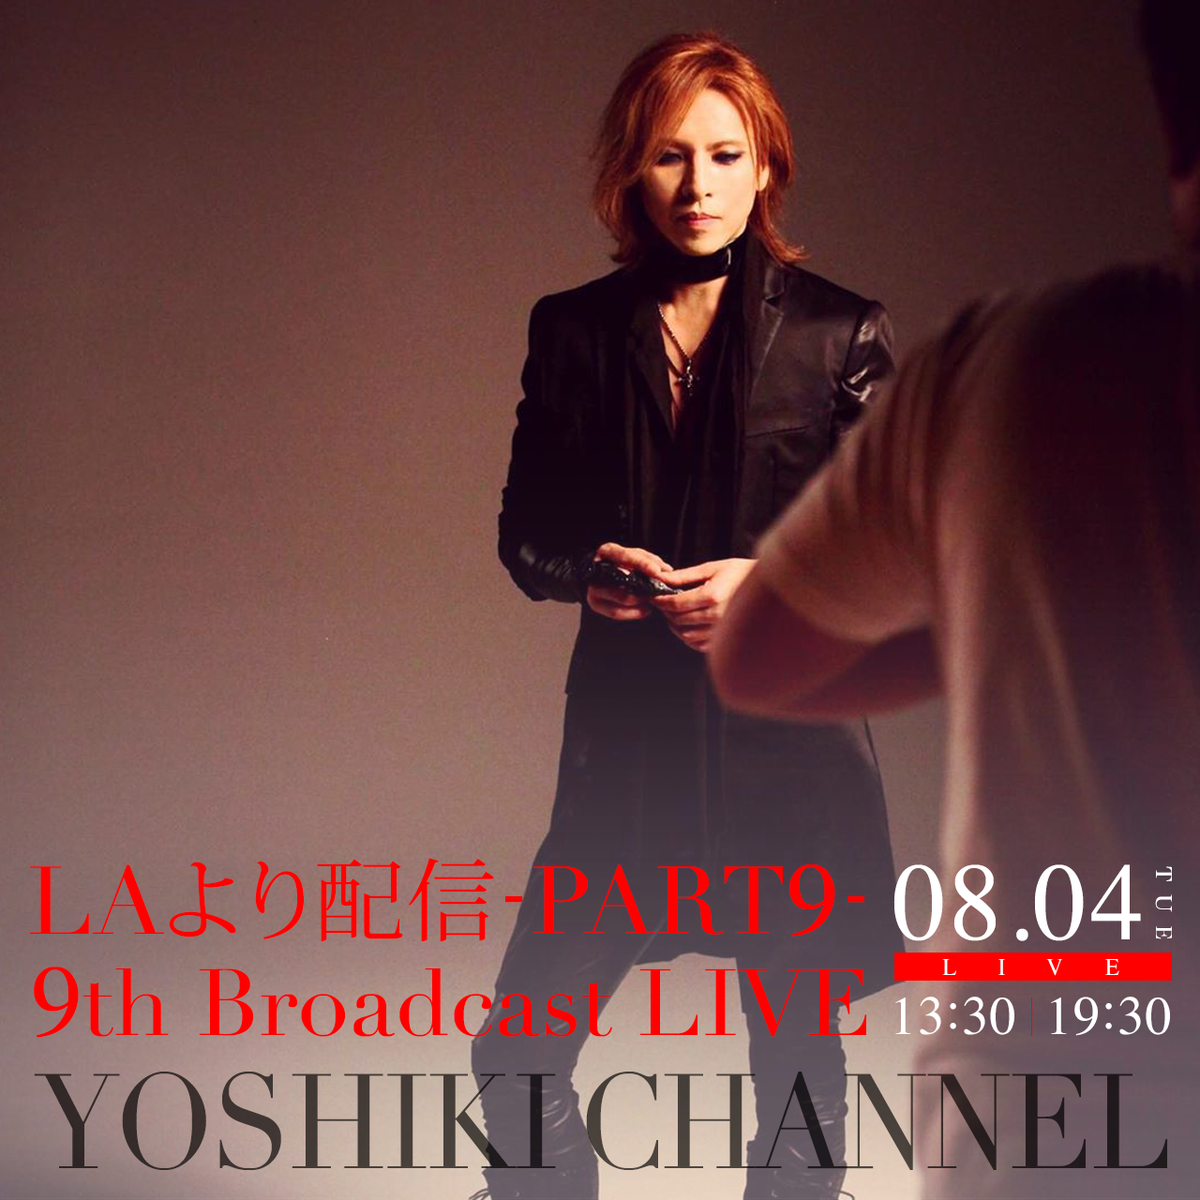 【明日8/4(Tue)13:30~ / 19:30〜生放送】#YOSHIKI #LAより 配信 -PART9-19:30の回に #真矢 ( #LUNASEA)が登場Japan → International→ @YoshikiOfficial@331shinya@LUNASEAOFFICIAL